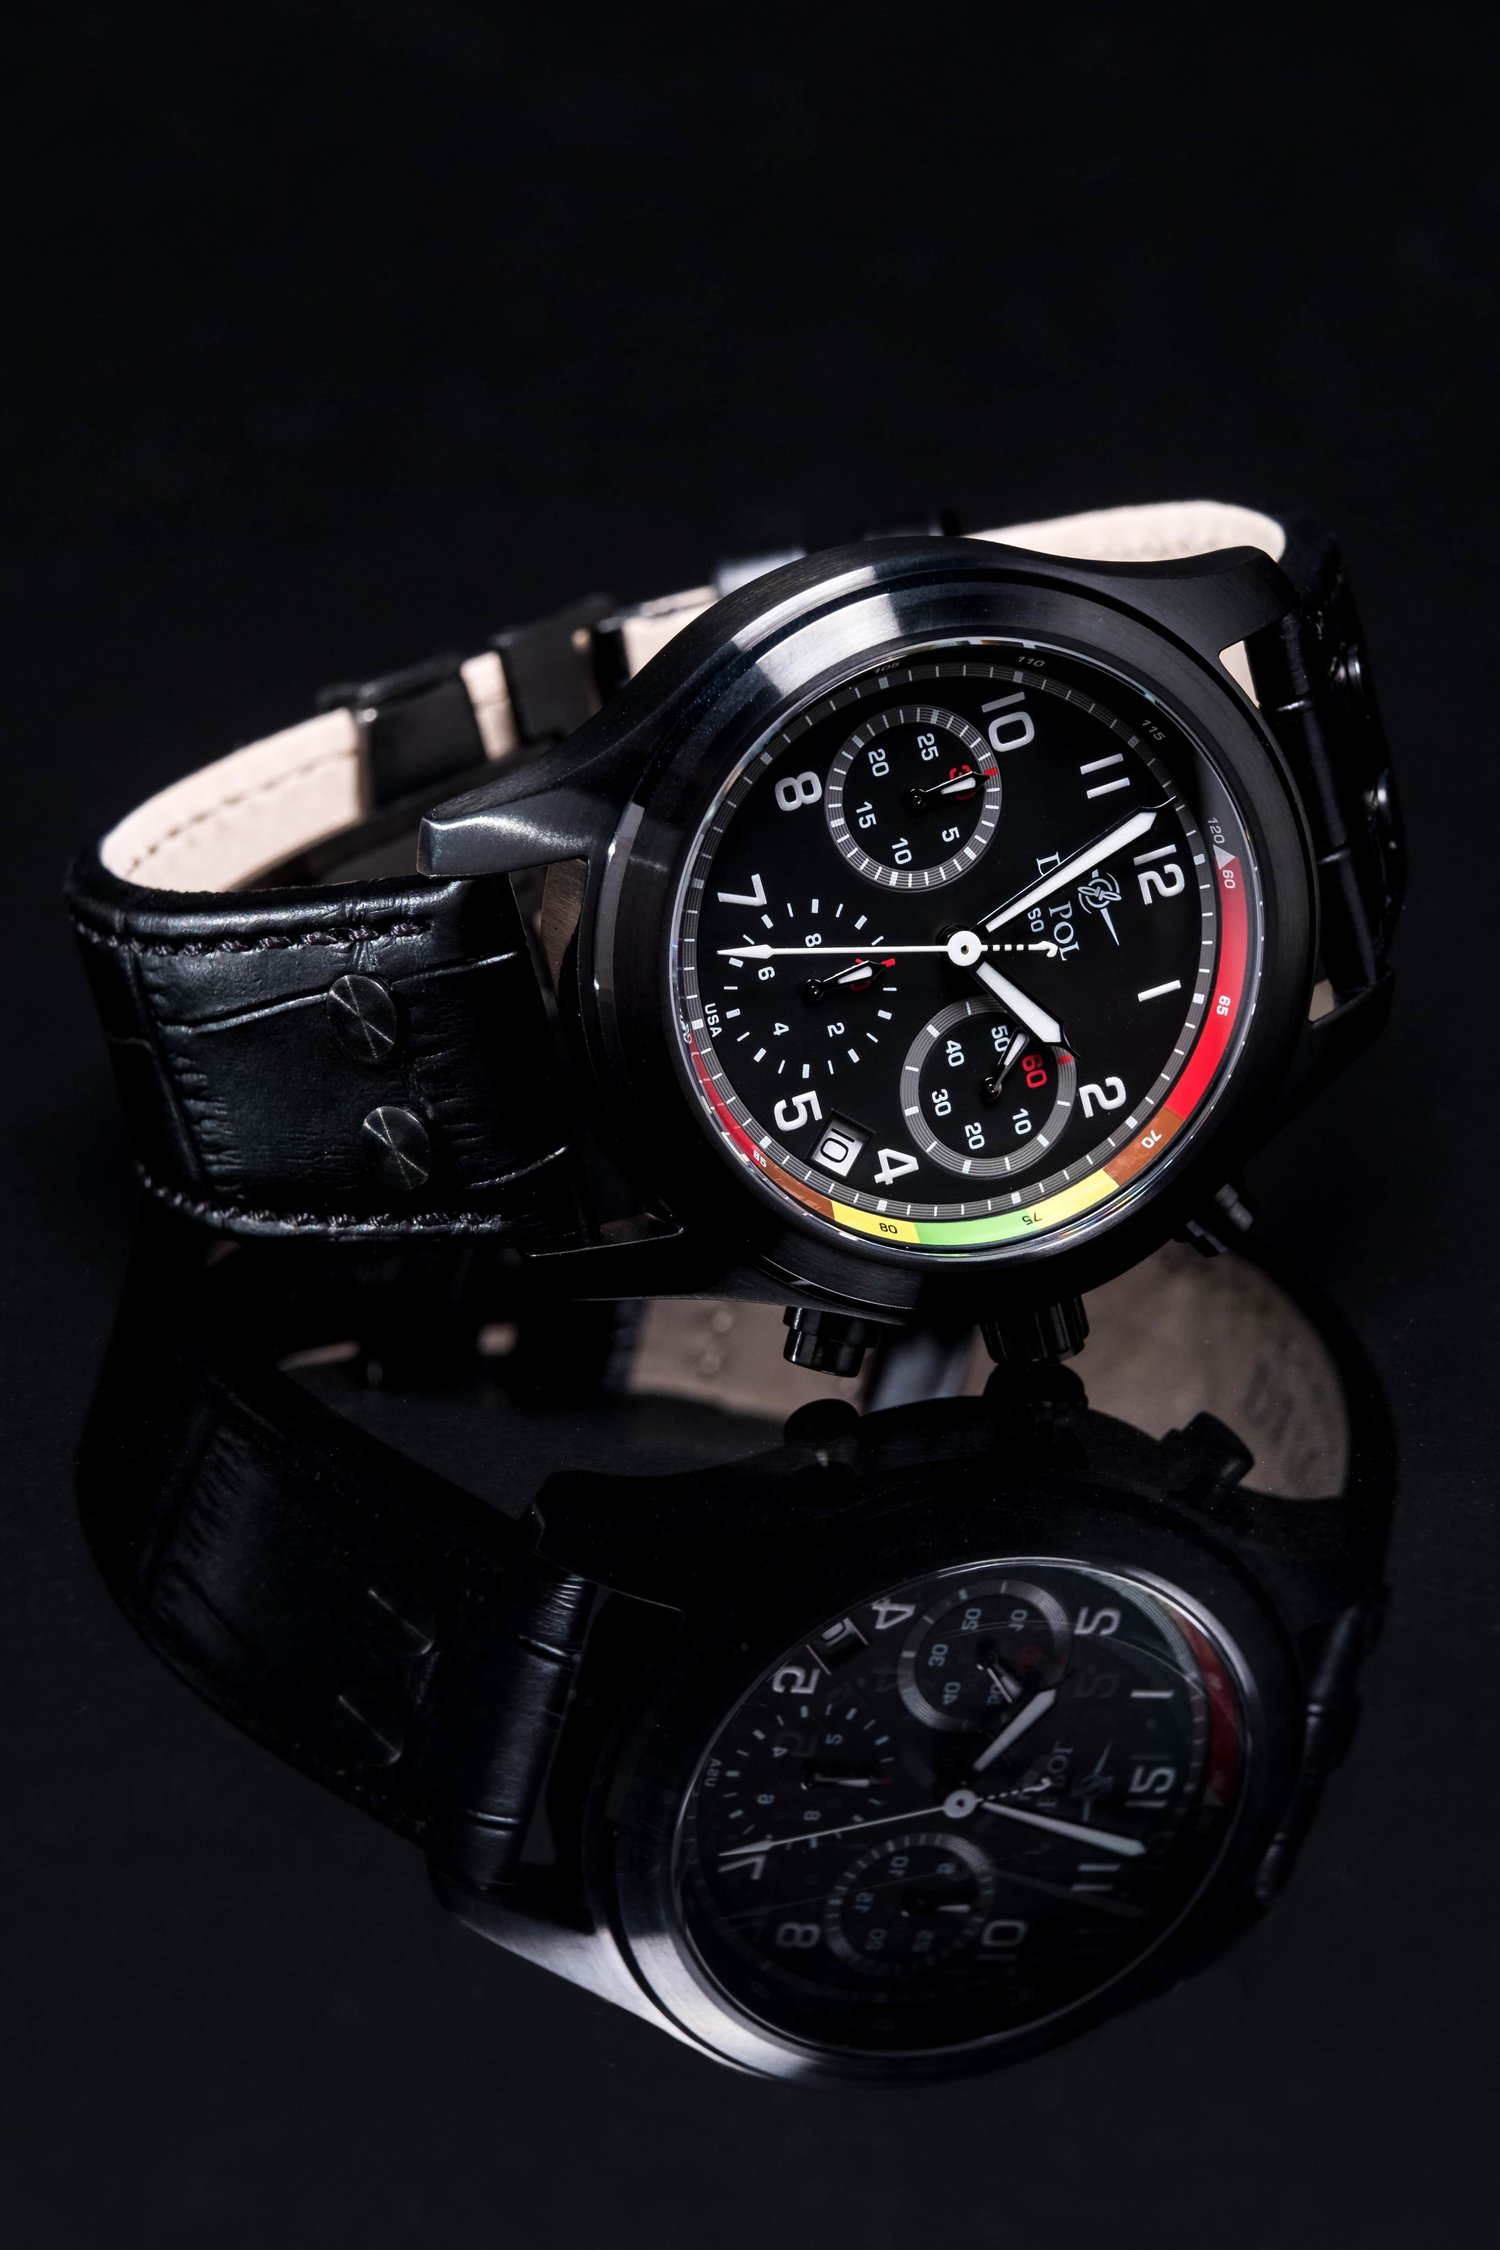 dlc owned u pre bremont watches